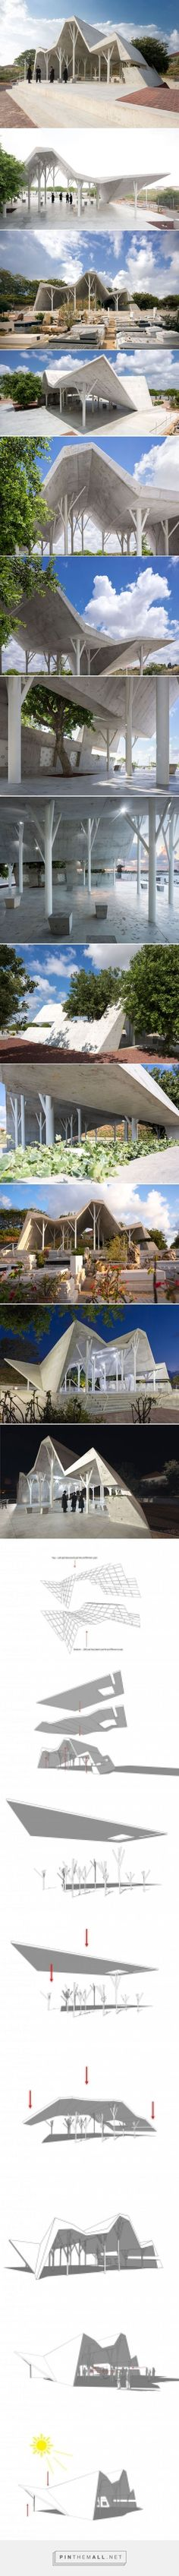 ron shenkin places concrete folded canopy over cemetery pavilion in israel - created via pinthemall.net